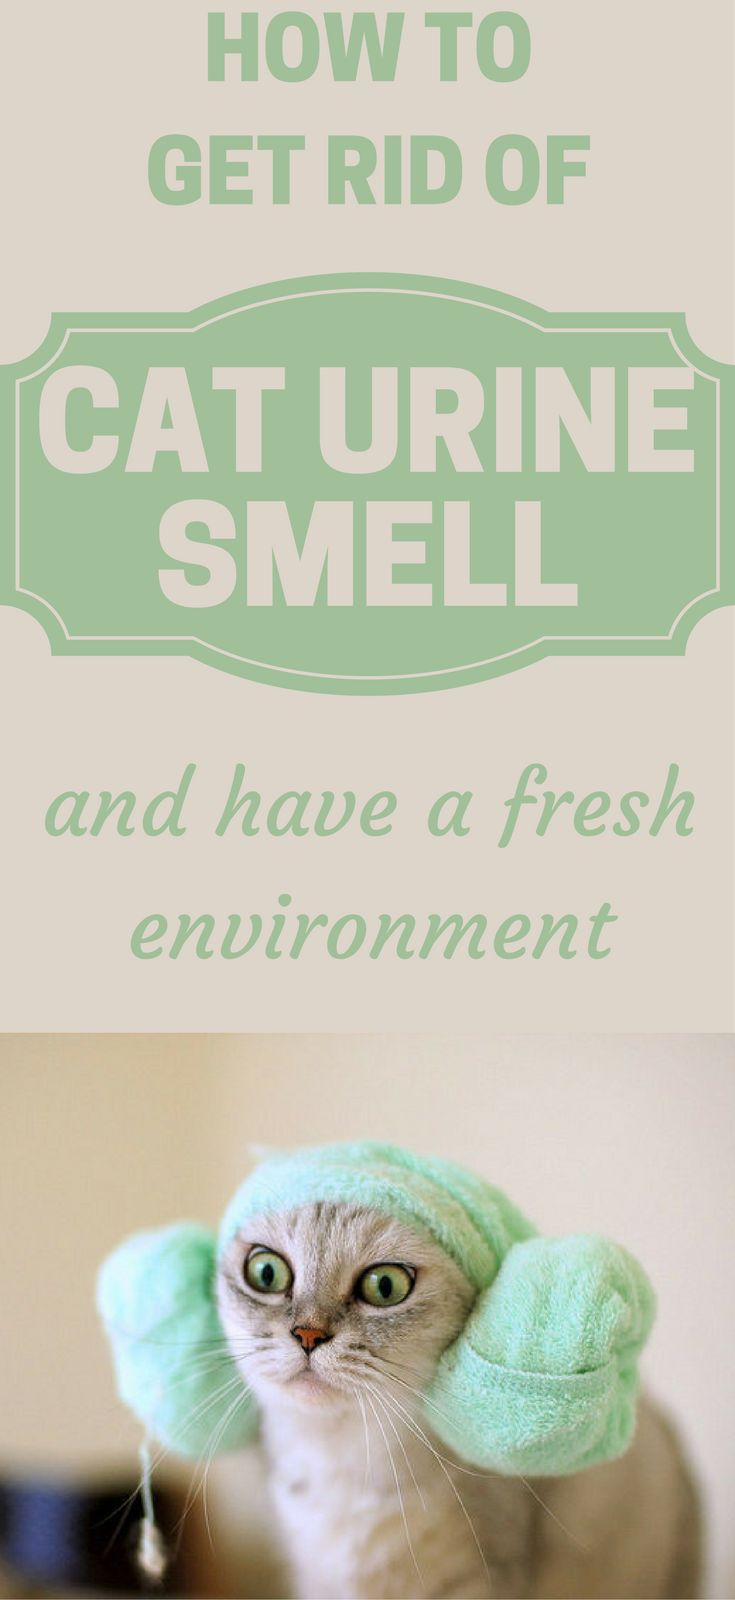 how-to-get-rid-of-cat-urine-smell-and-have-a-fresh-environment